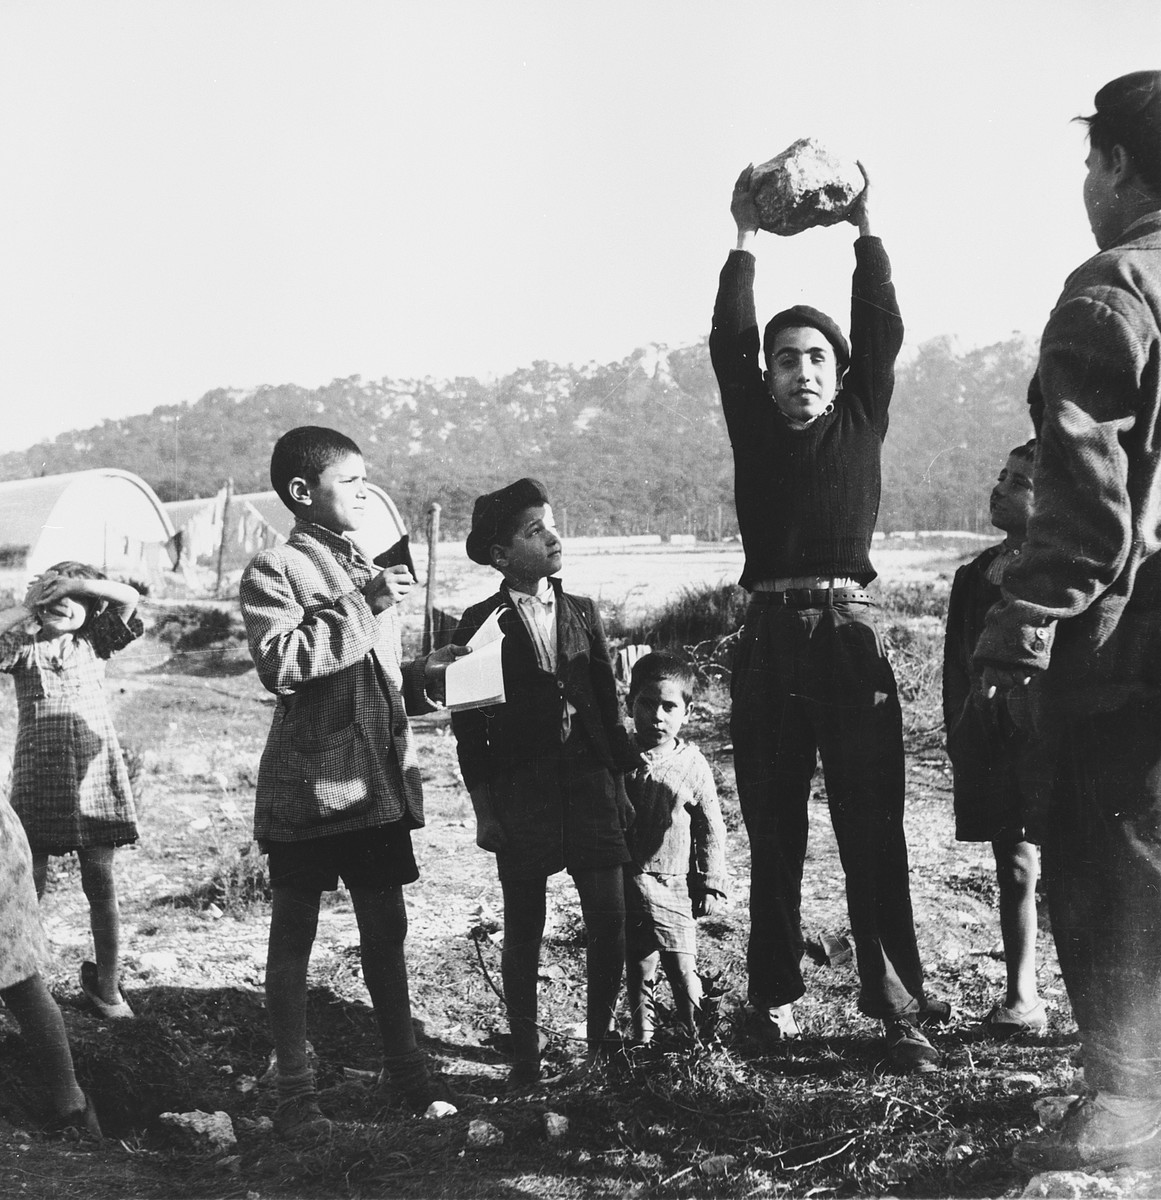 A group of Morrocan-Jewish boys gathers together in the Los Arenas camp while waiting to immigrate to Palestine.